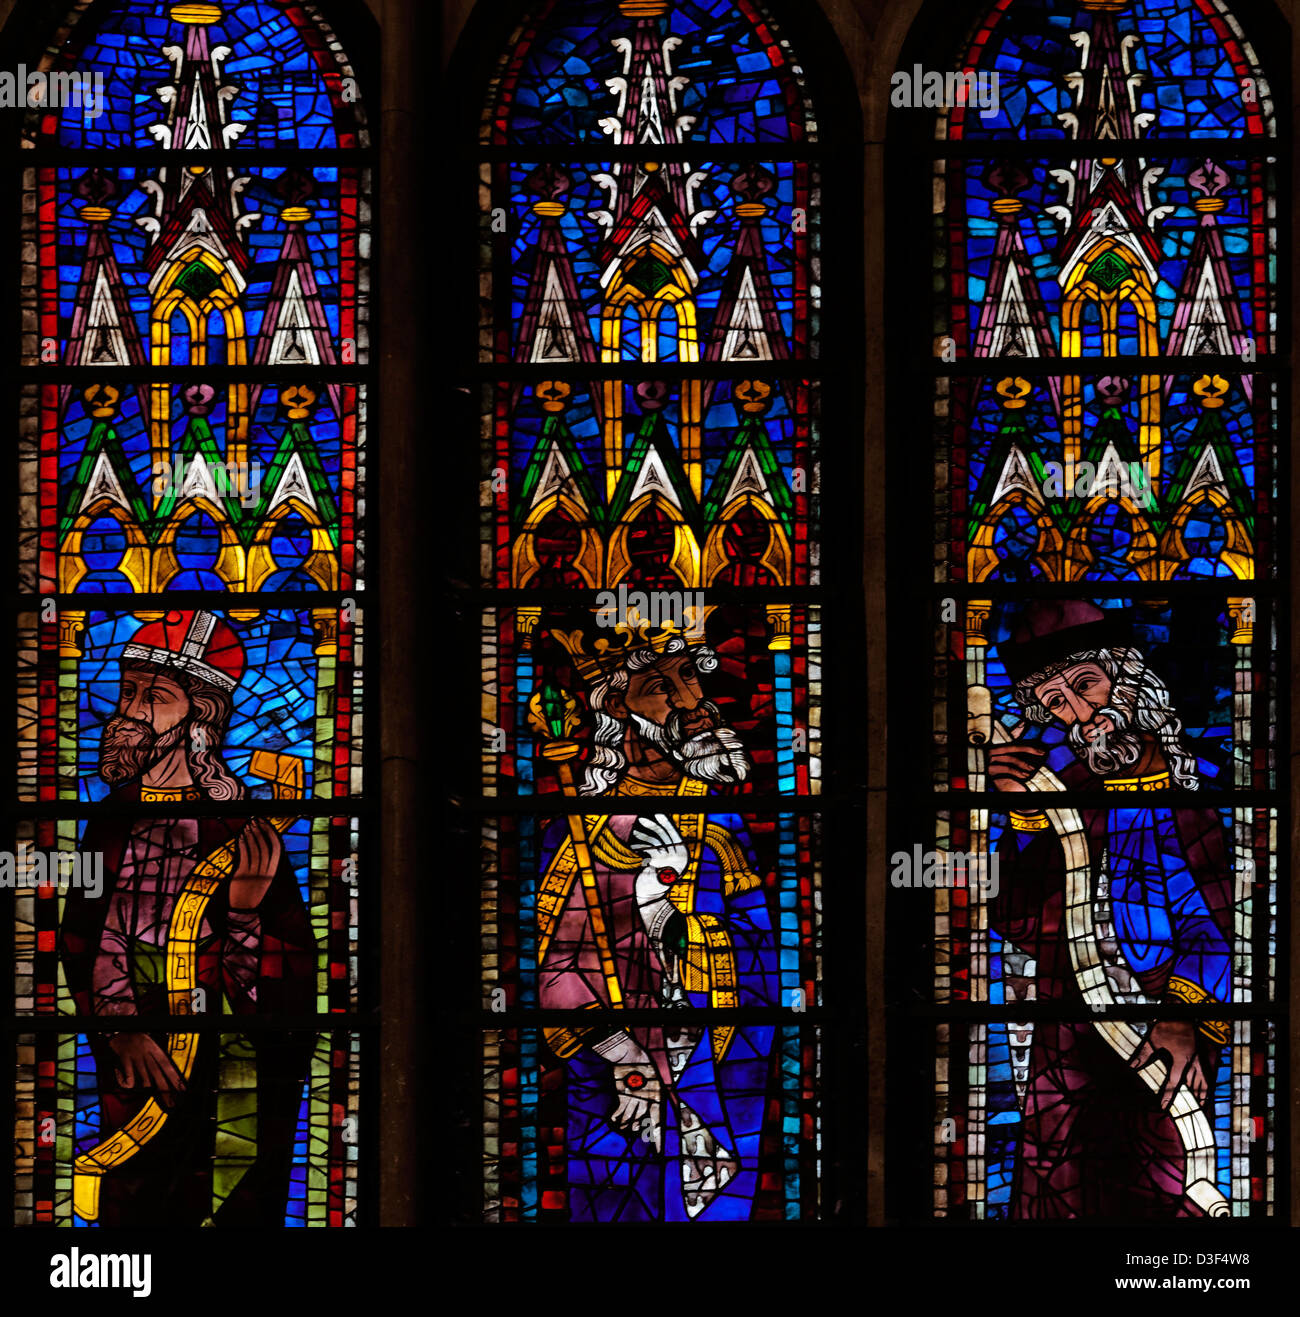 Medieval Stained Glass In The Gothic Cathedral Of Leon Province Castilla Y LeonSpain